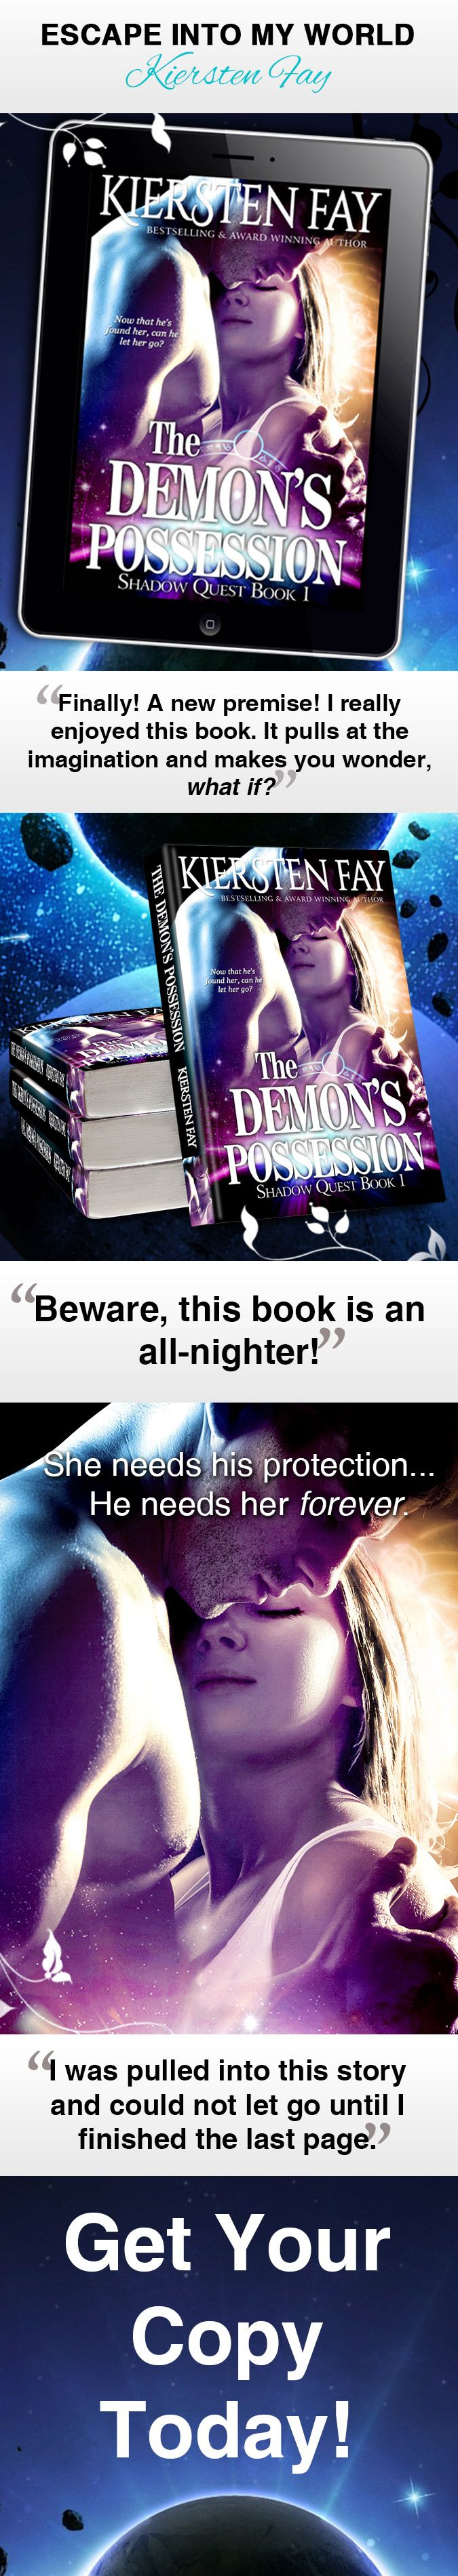 Get Your Copy Of The Demon's Possession Now!